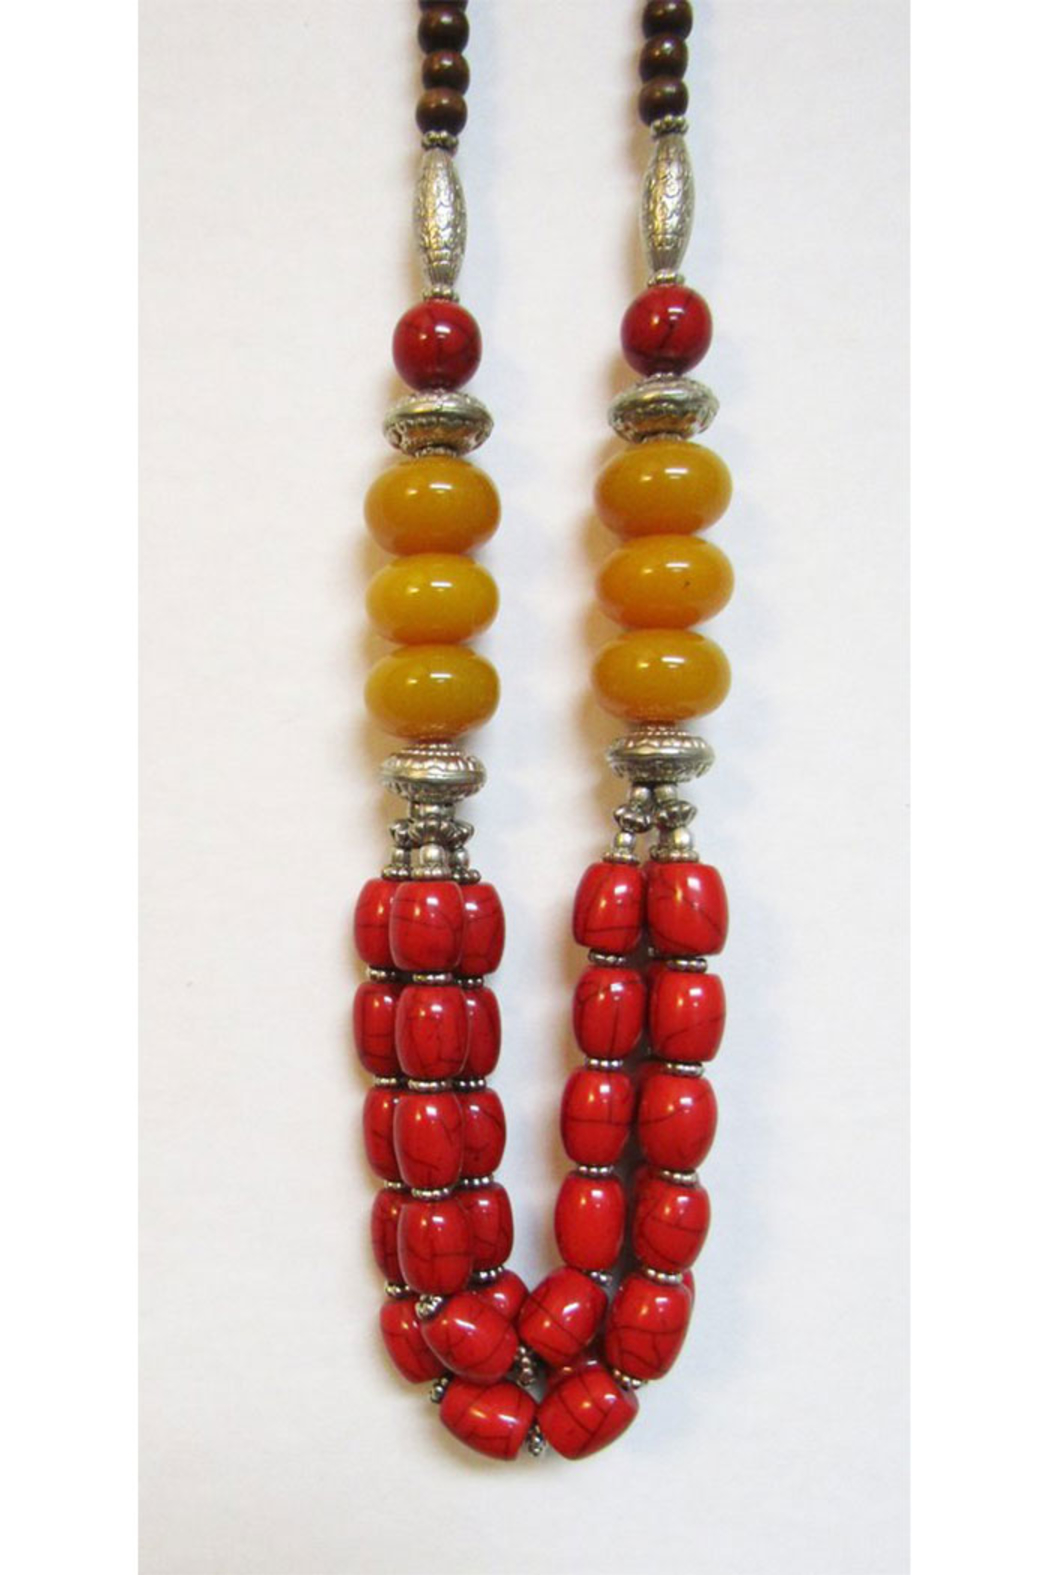 KIMBALS Tibetan Bohemian Style Beaded Necklace In Silver/Red/Amber - Main Image